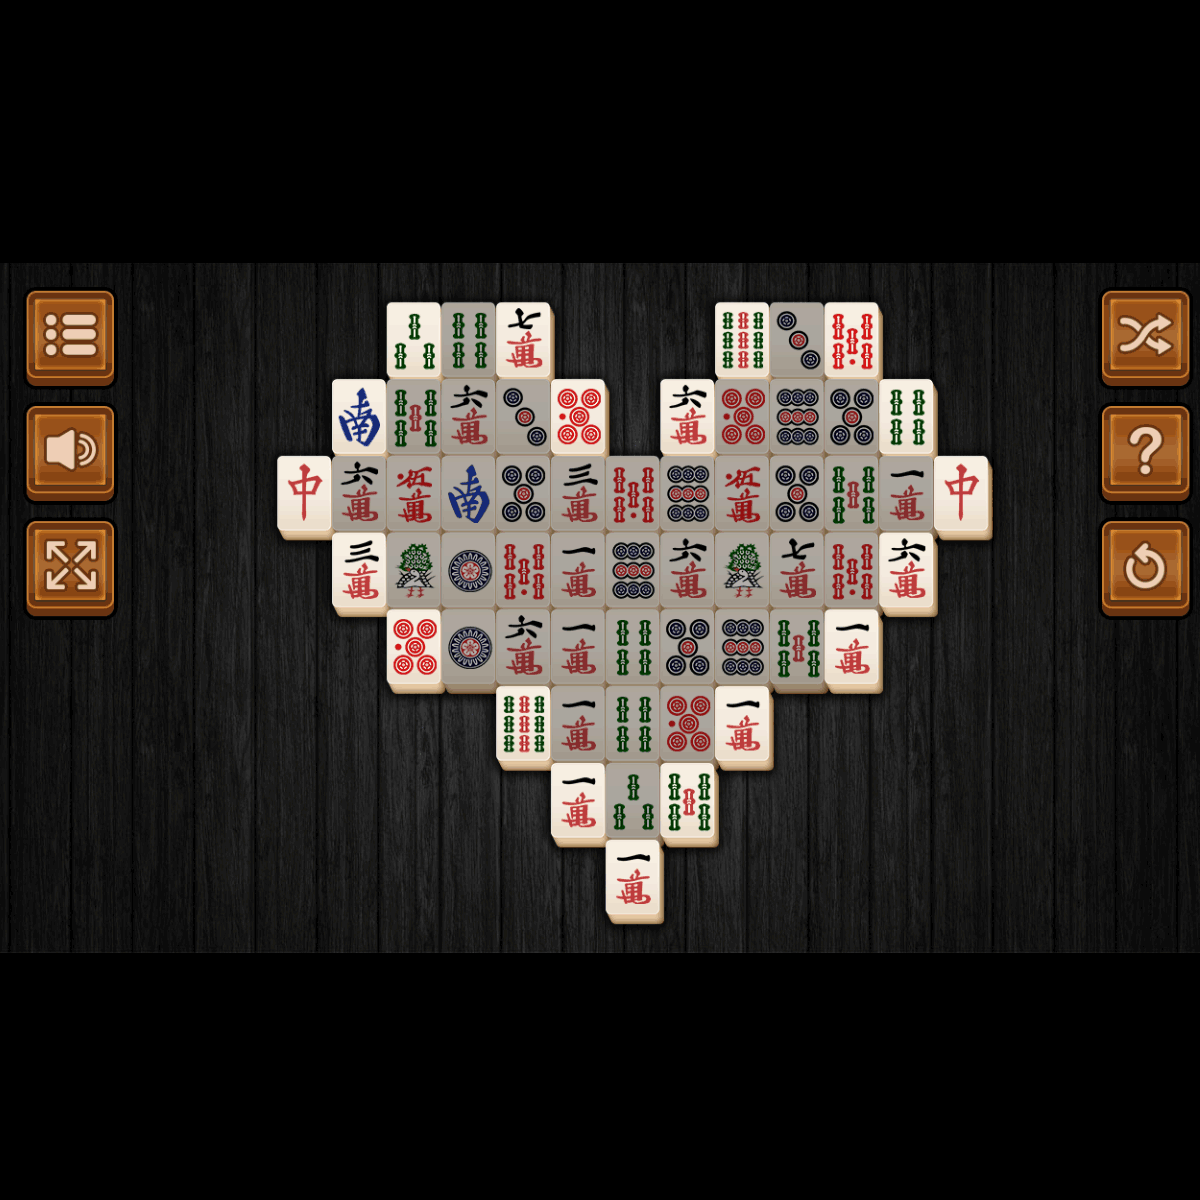 More Mahjong   Play instantly on FreeGames org